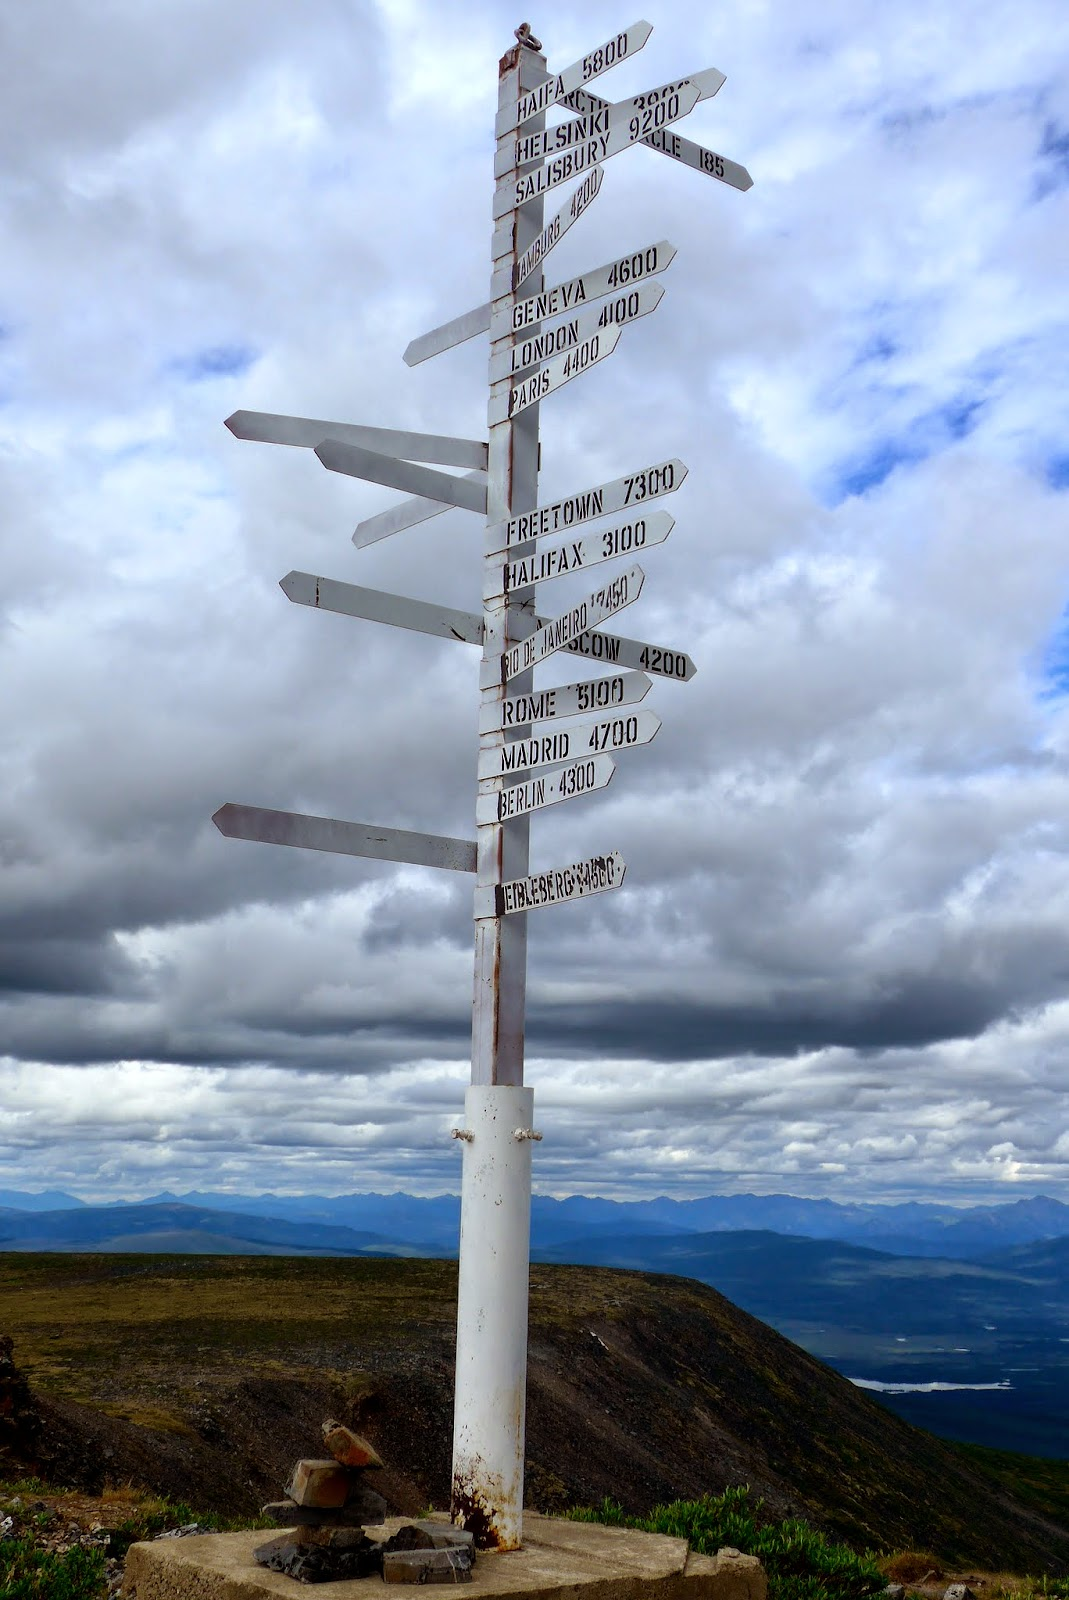 The sign post on Keno Hill.